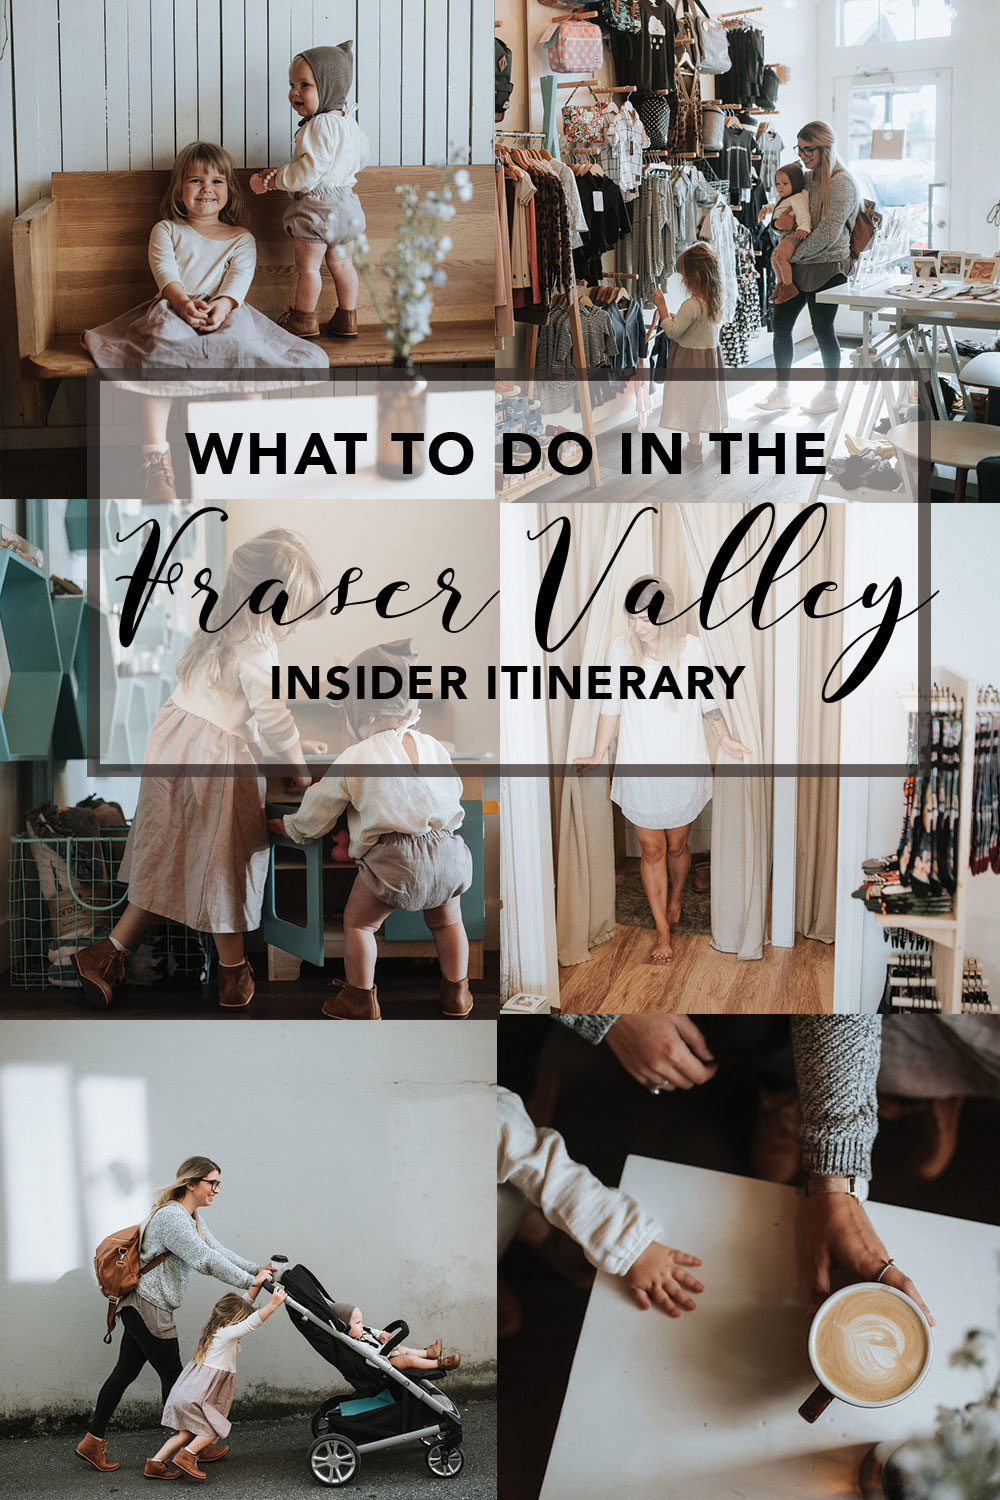 Family Friendly Things to Do in the Fraser Valley